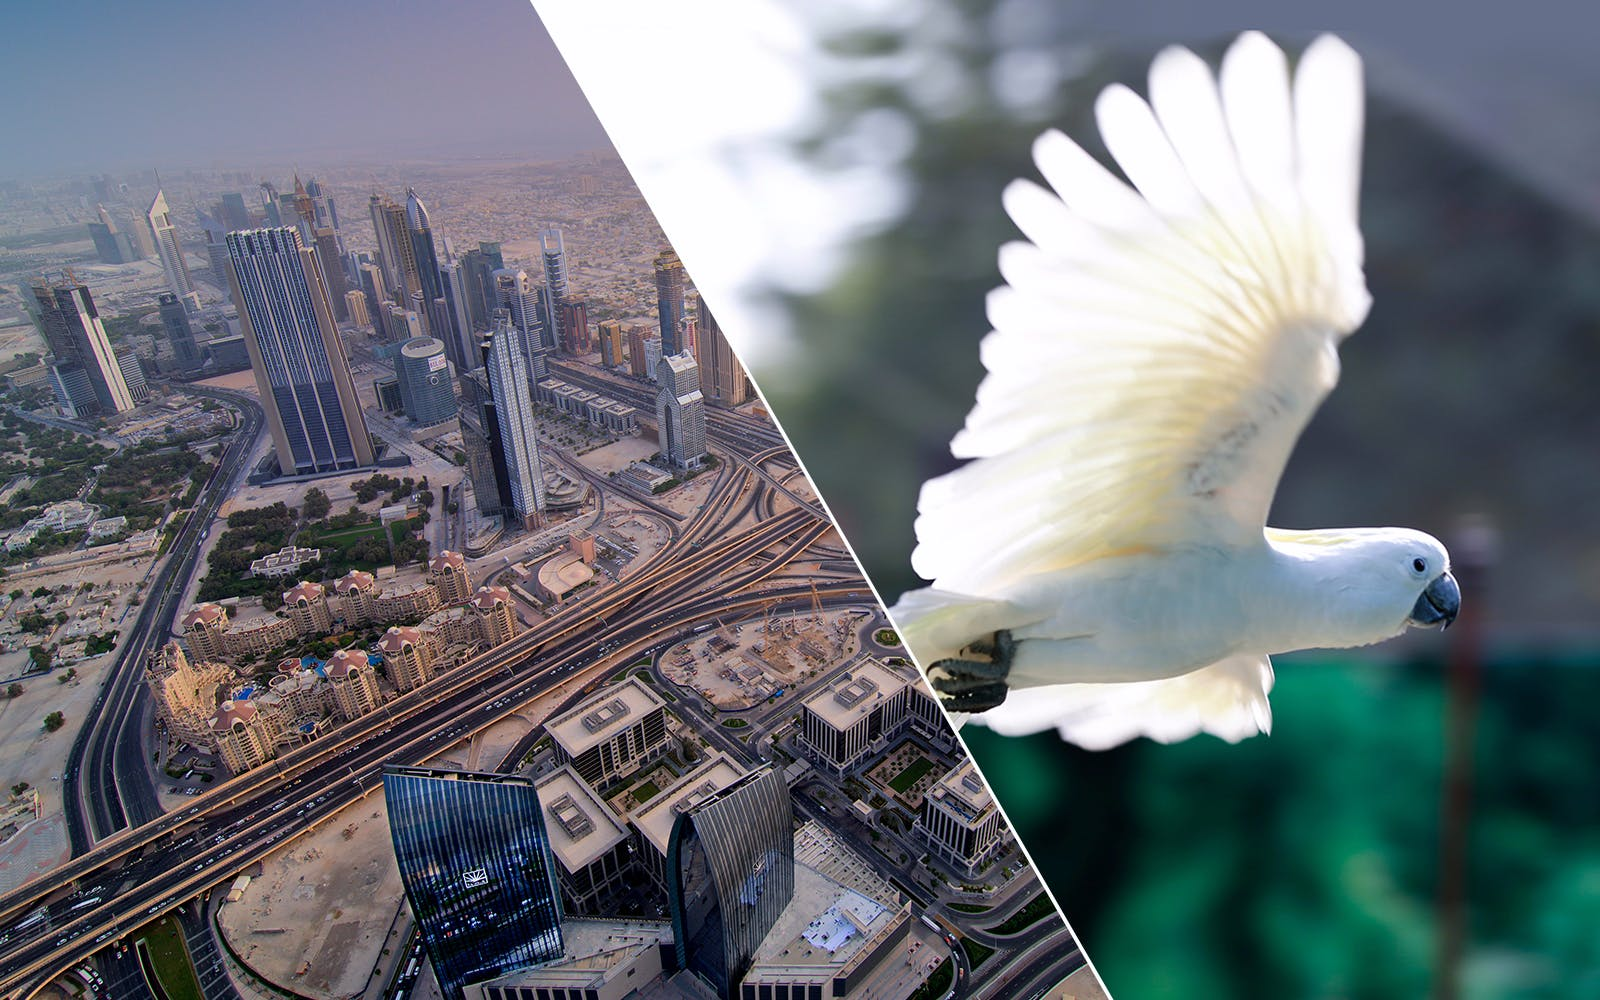 Burj Khalifa: At the Top(Level 124 & 125) With Creek Park Exotic Bird Show